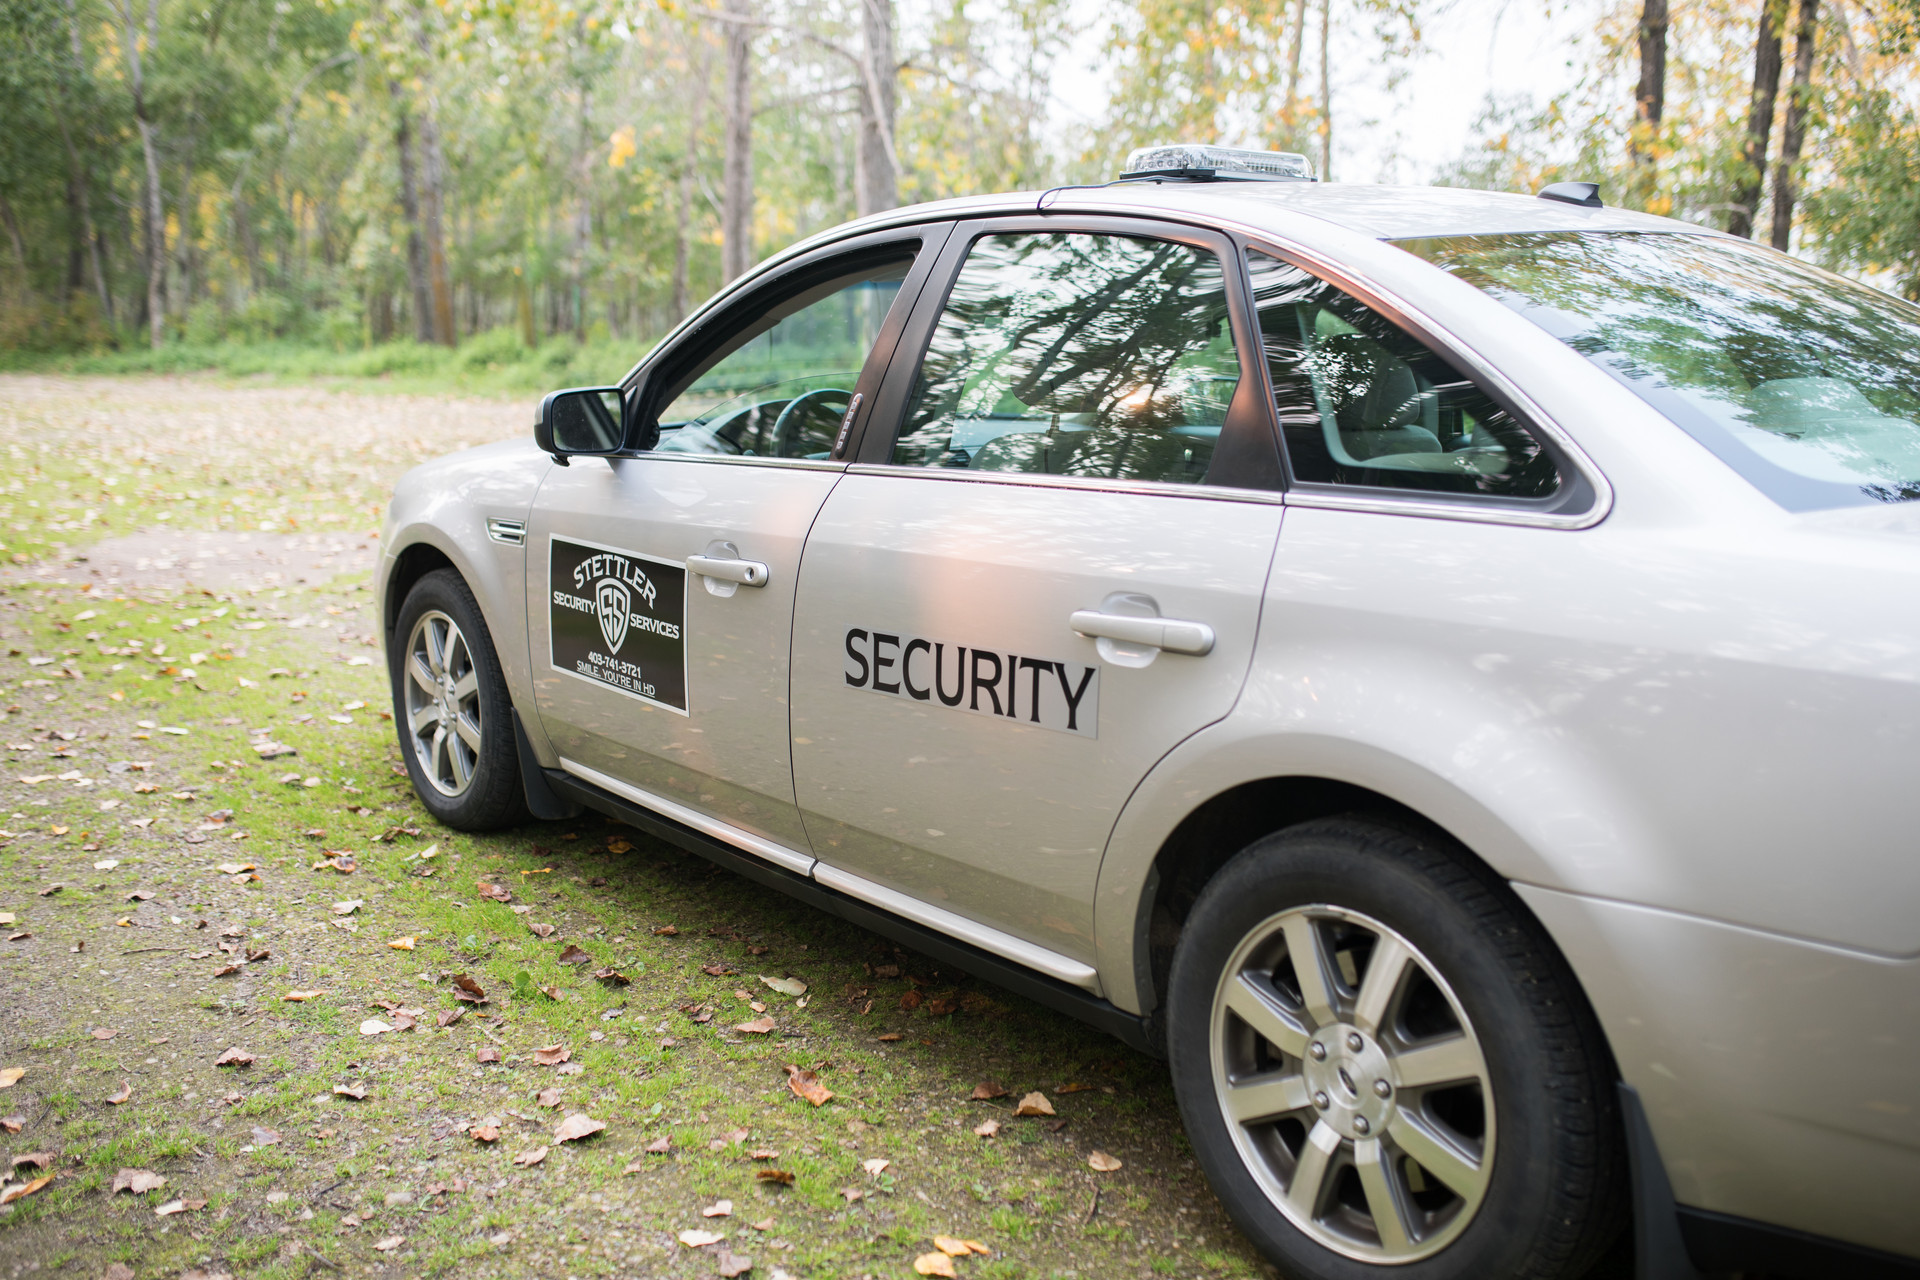 Stettler Security Services